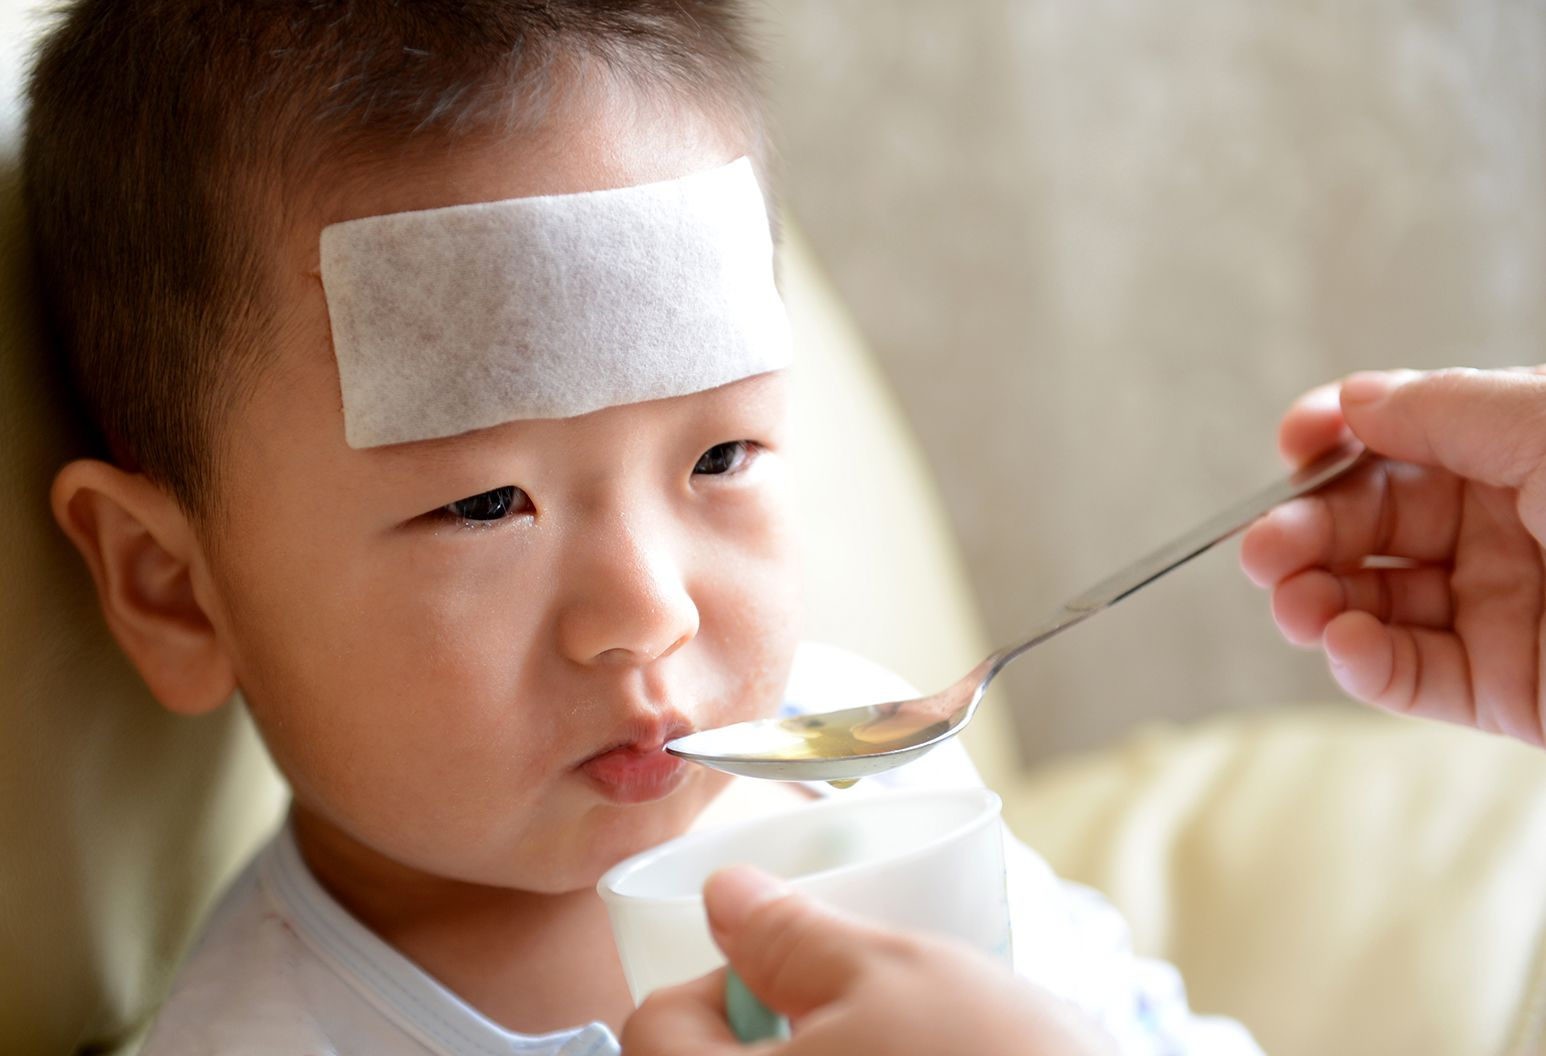 What's the Best Way to Treat My Child's Fever?